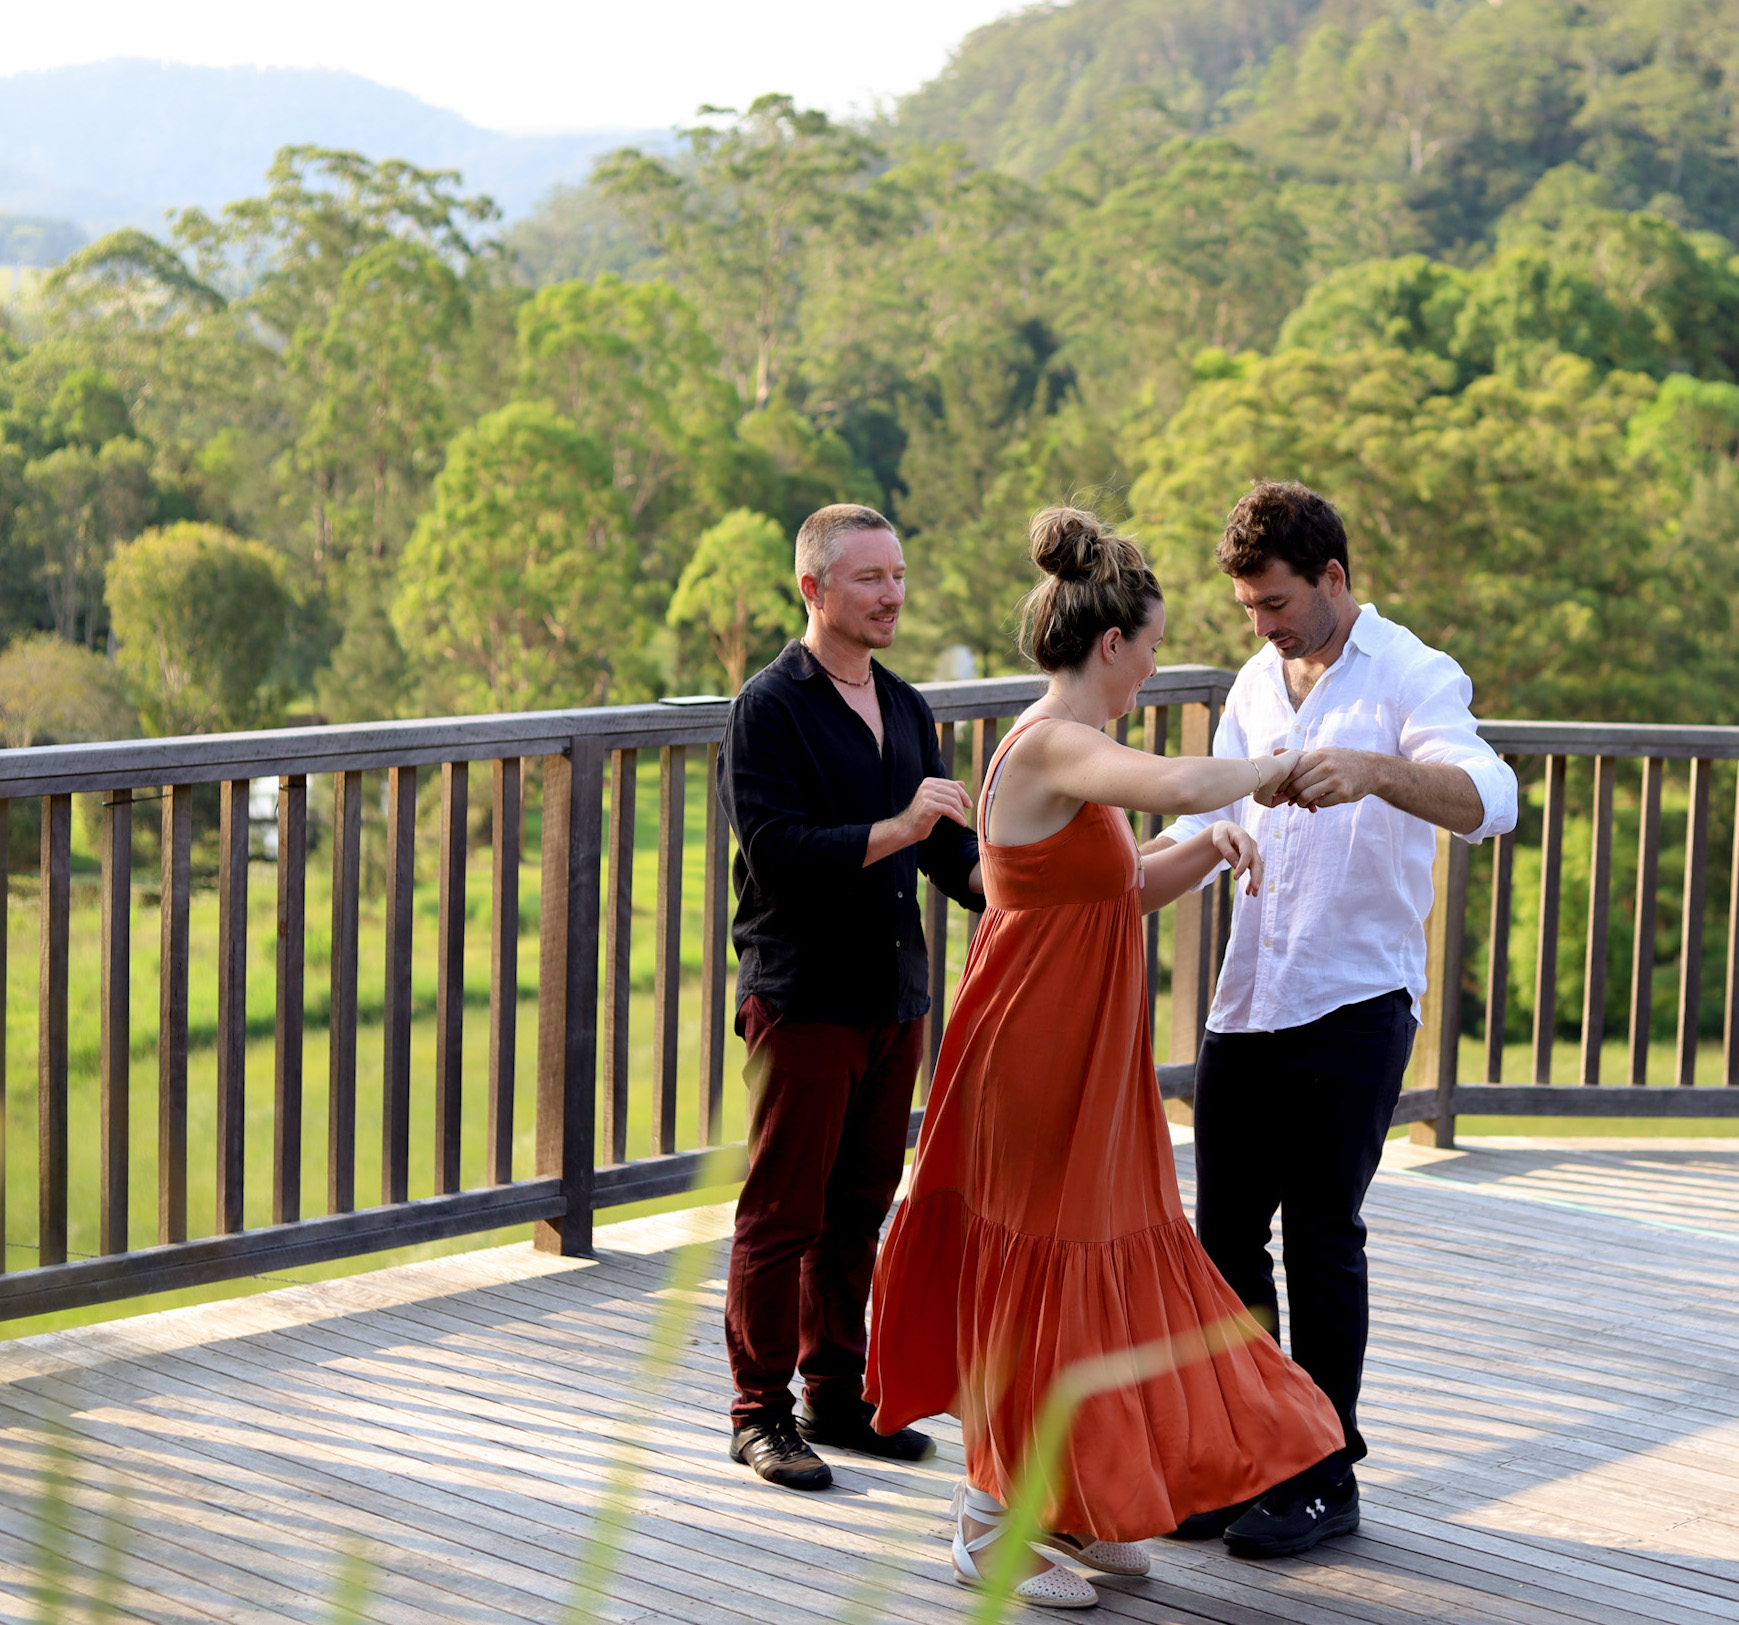 Wedding Dance Lessons with Corre Wade at Friday Creek Retreat